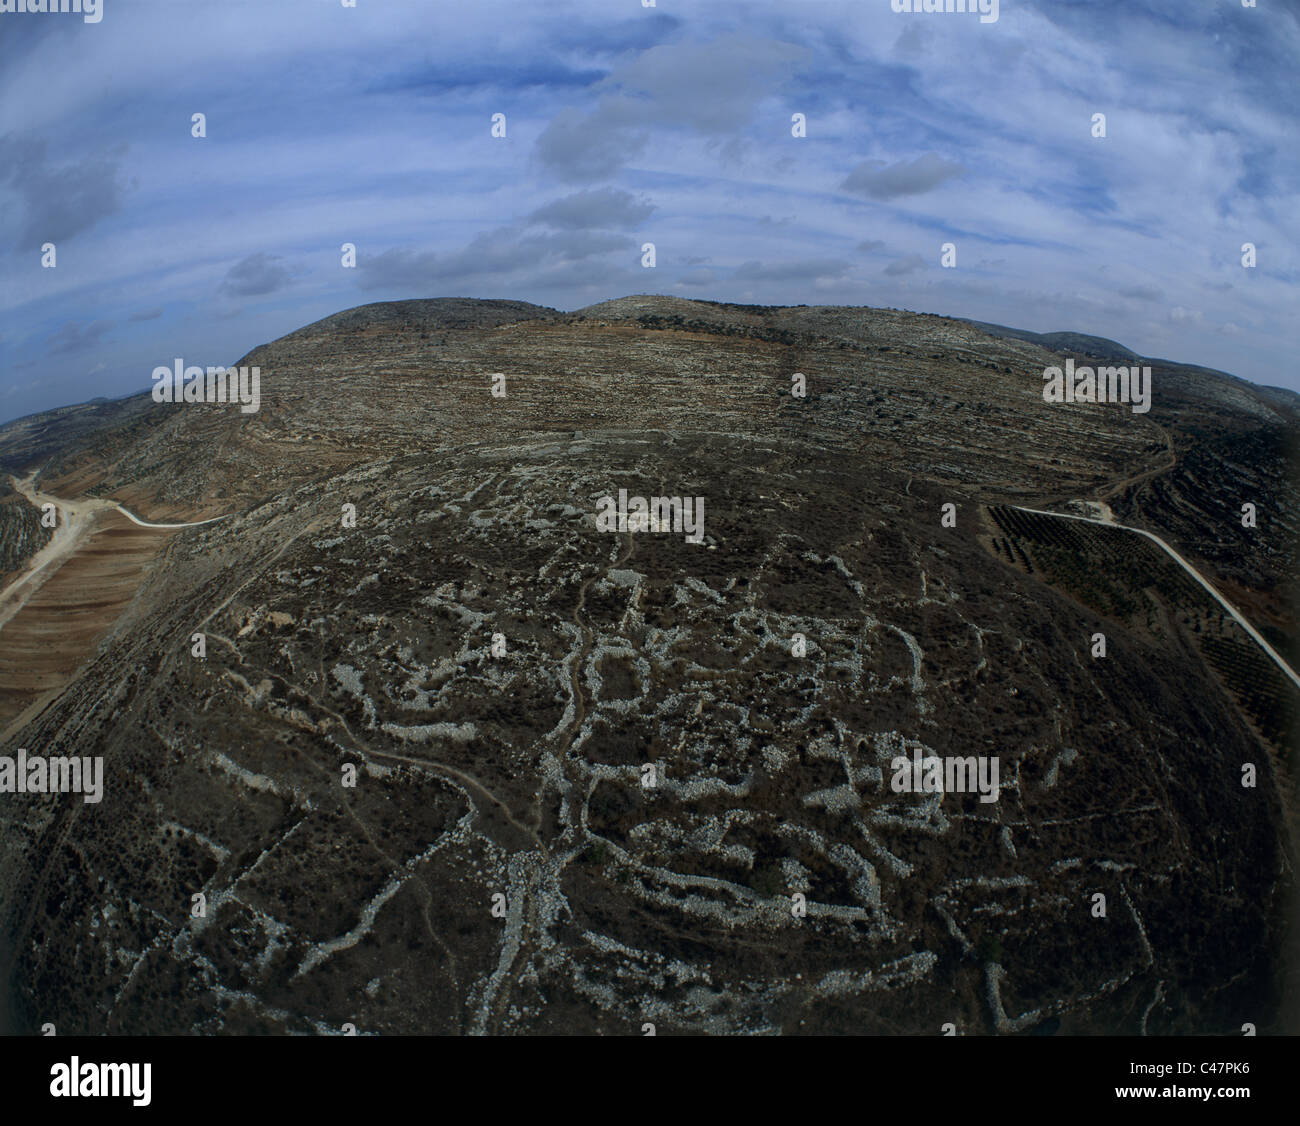 Aerial view of the biblical city of Shiloh - Stock Image